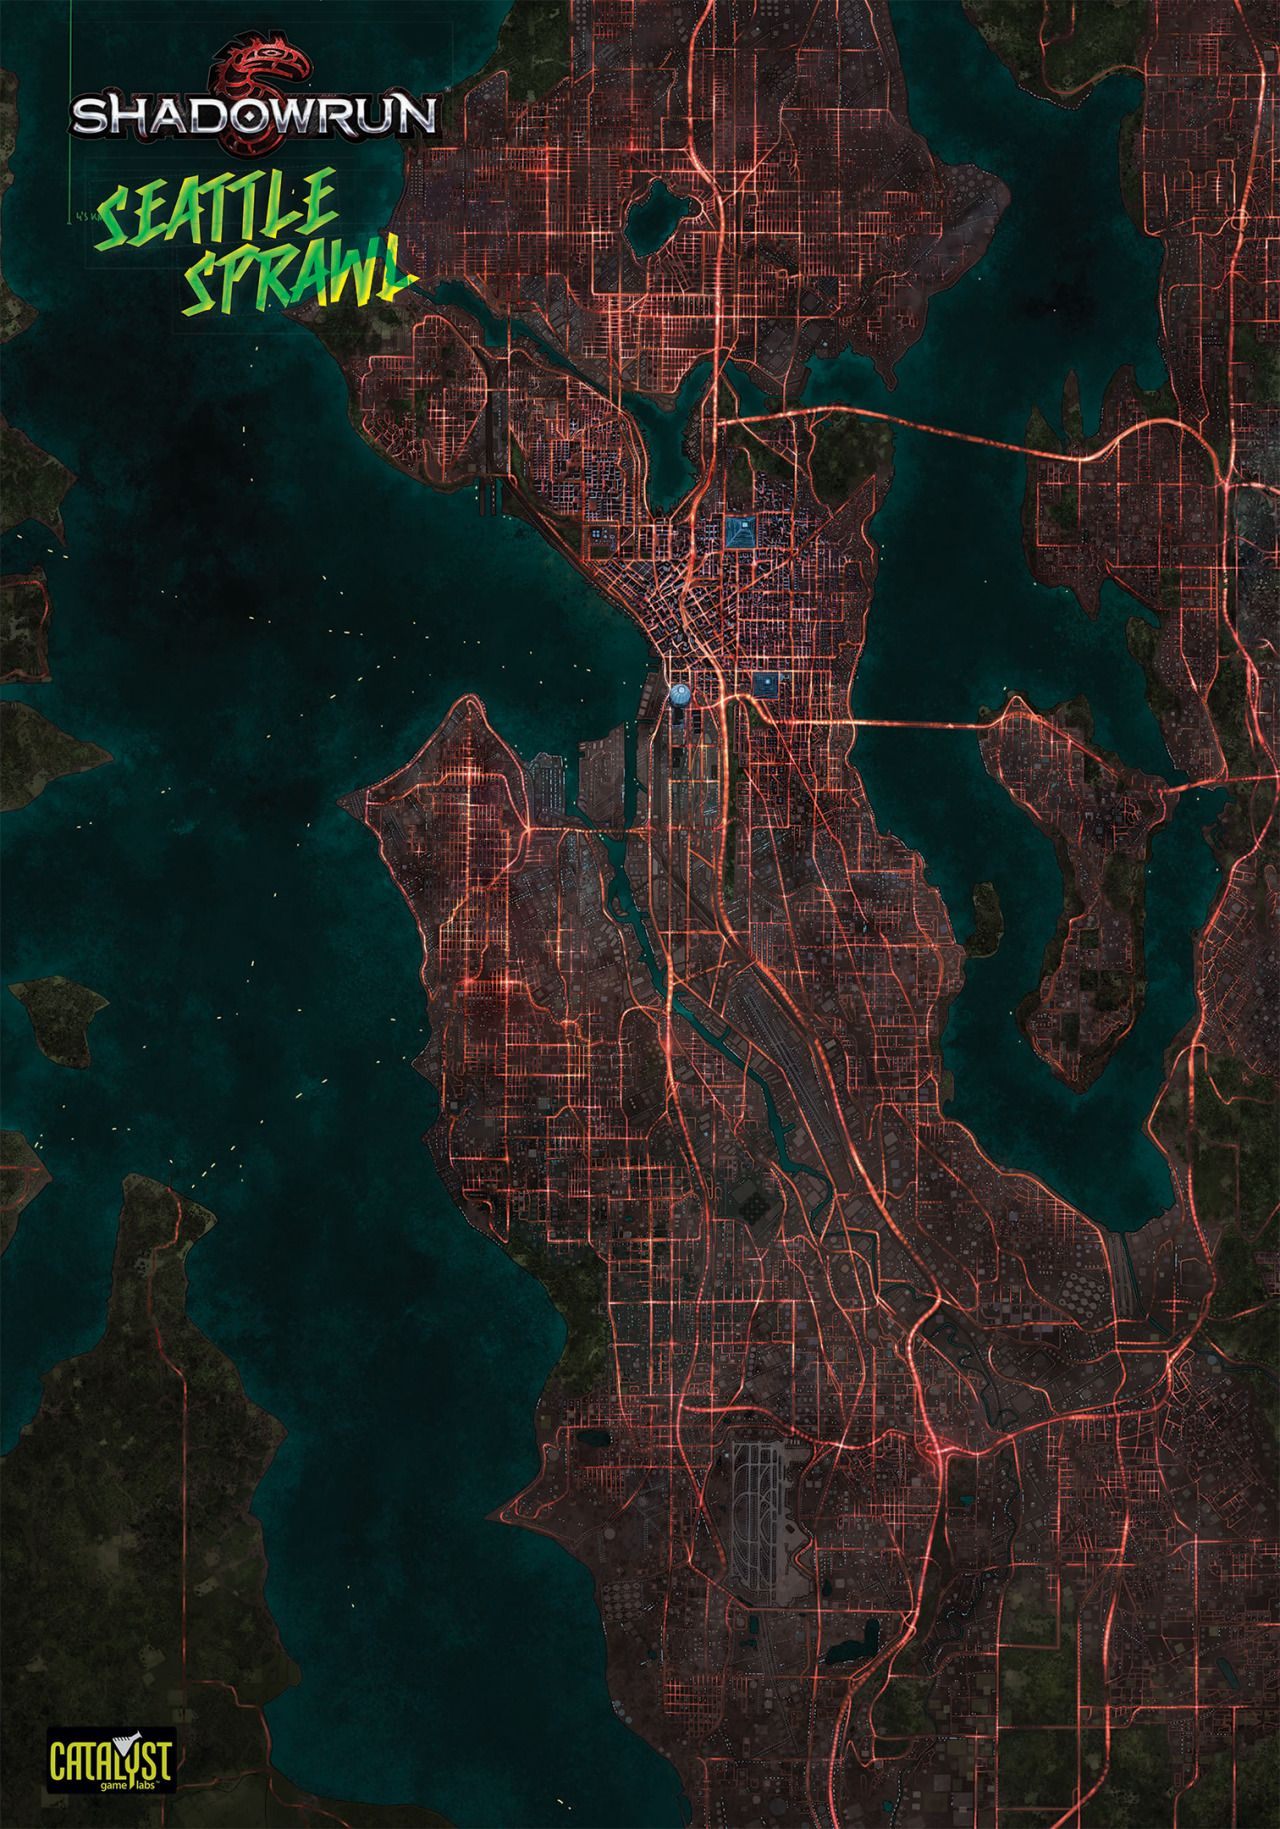 Map of Seattle in Shadowrun | Maps in 2019 | Pinterest | Shadowrun